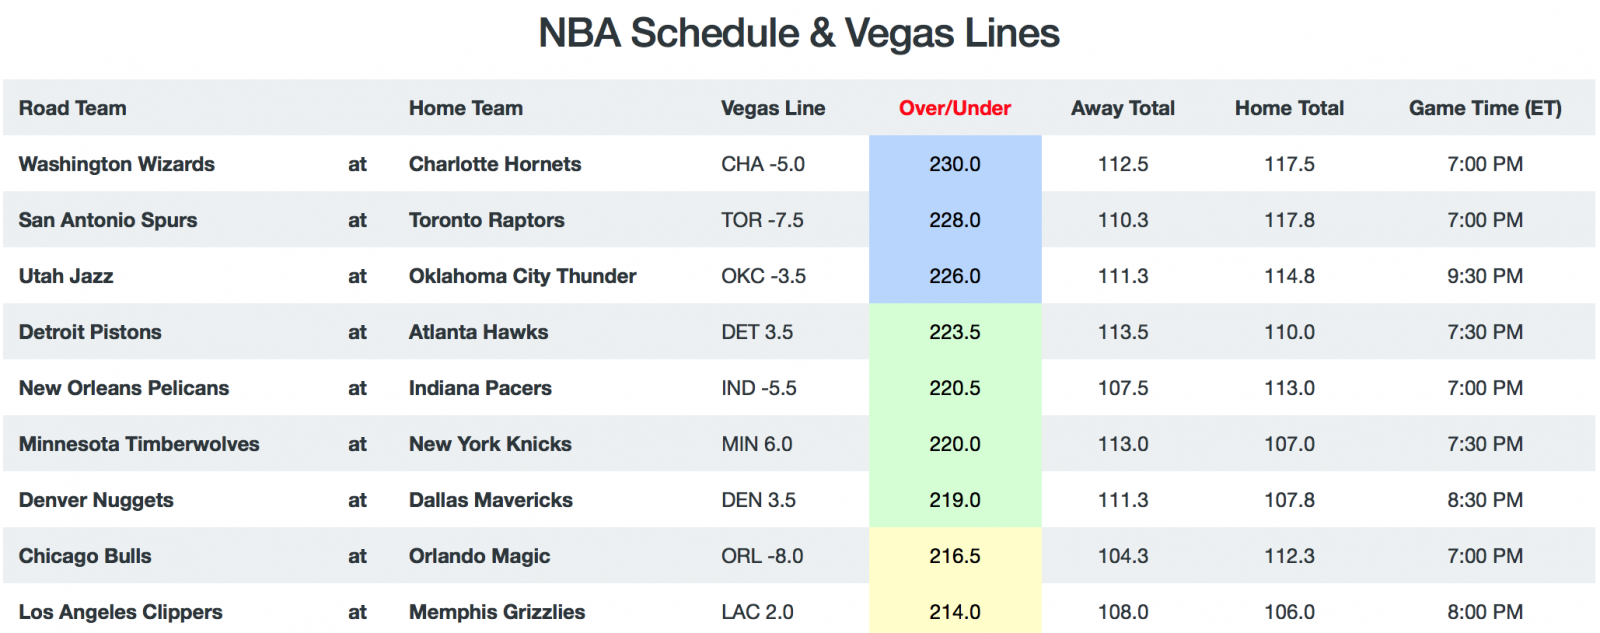 NBA Game Totals and Lines